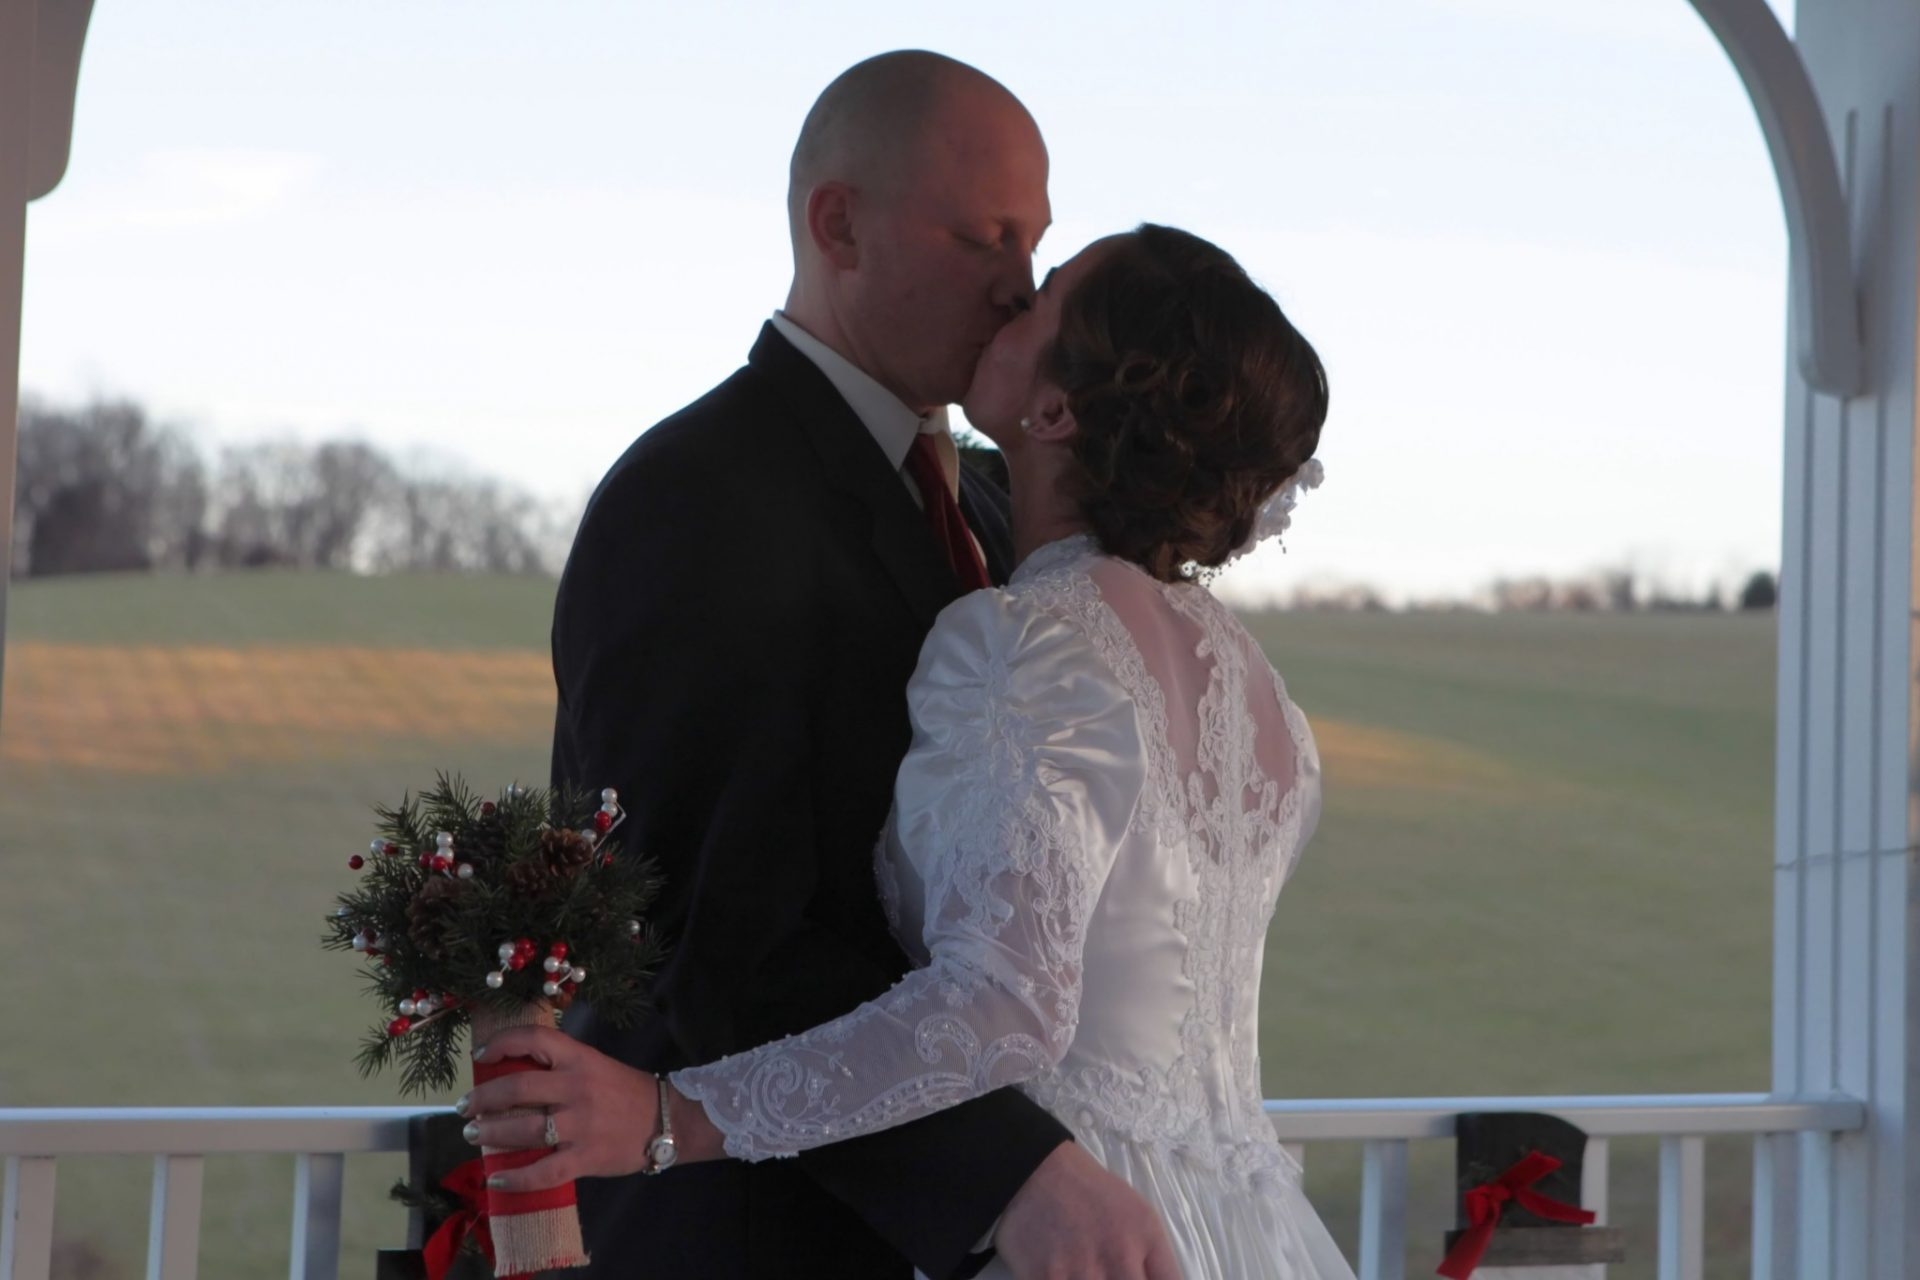 Winter wedding venue in Frederick Maryland